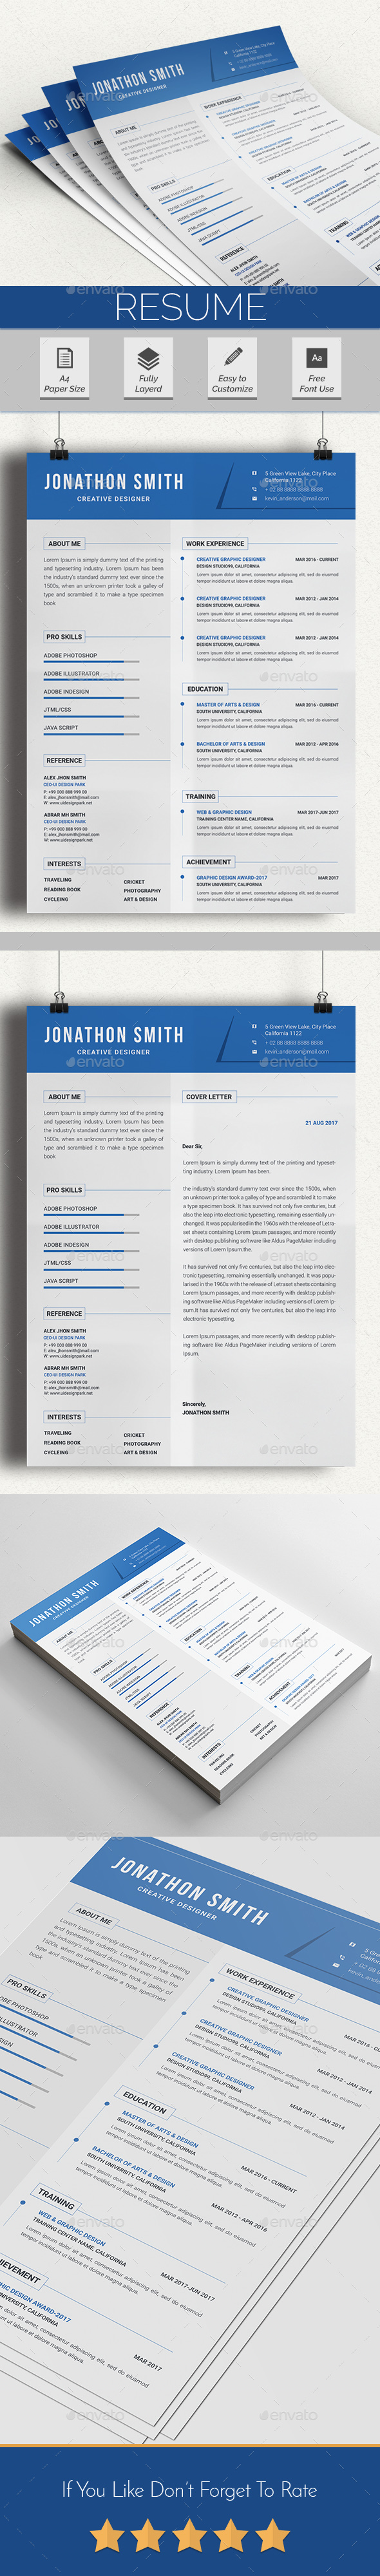 Word Format Resume Pdf Resume Design Download  Nullz Gfx  Video Secretary Resume Template Pdf with Cleaning Resume Word Tags A Clean Cv Clean Resume Cover Letter Curriculum Vitae Cv Cv  Design Designer Resume Doc Docx Docx File Eps Resume Job Cv  Resume Template For Students